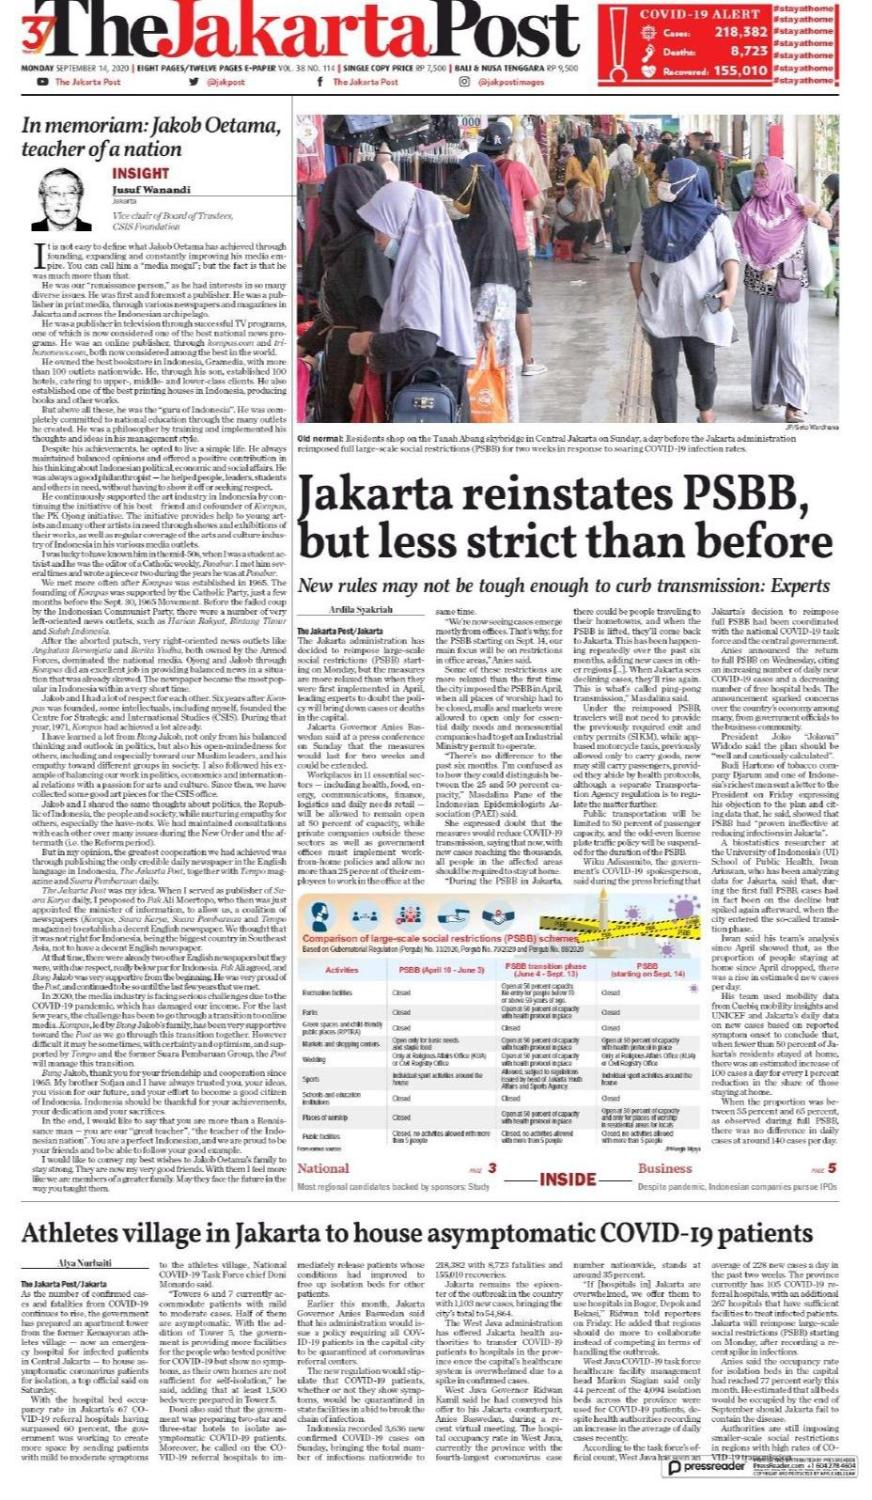 The Jakarta Post On Twitter Today S Paper Sep 14 2020 Jakpost Jakarta Reinstates Psbb But Less Strict Than Before Https T Co Mrpd84ti29 In Memoriam Jakob Oetama Teacher Of A Nation Https T Co Btuf1rbtbe Athletes Village In